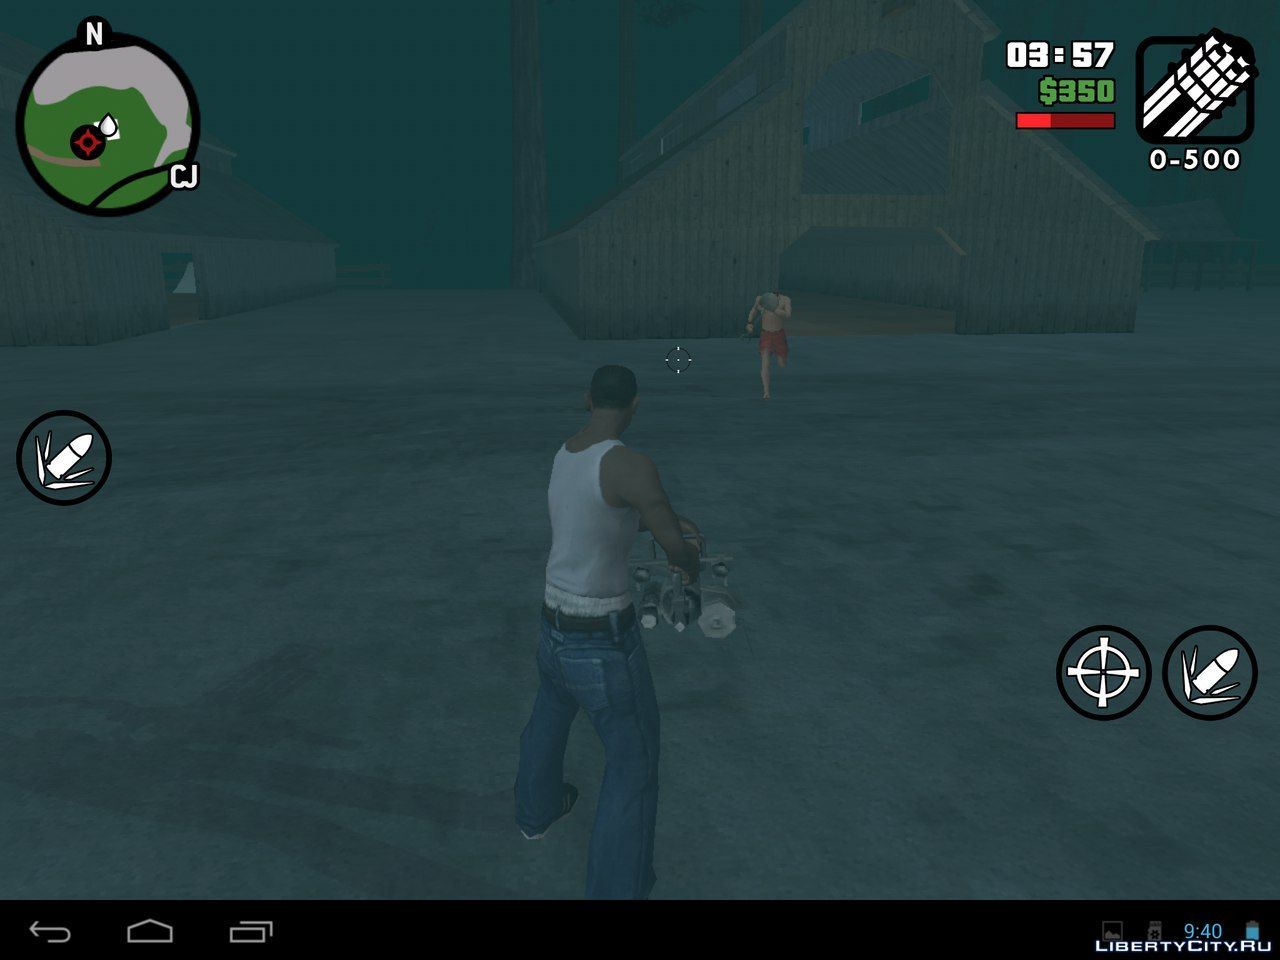 Misterix mod 10 0 (Android) for GTA San Andreas (iOS, Android)